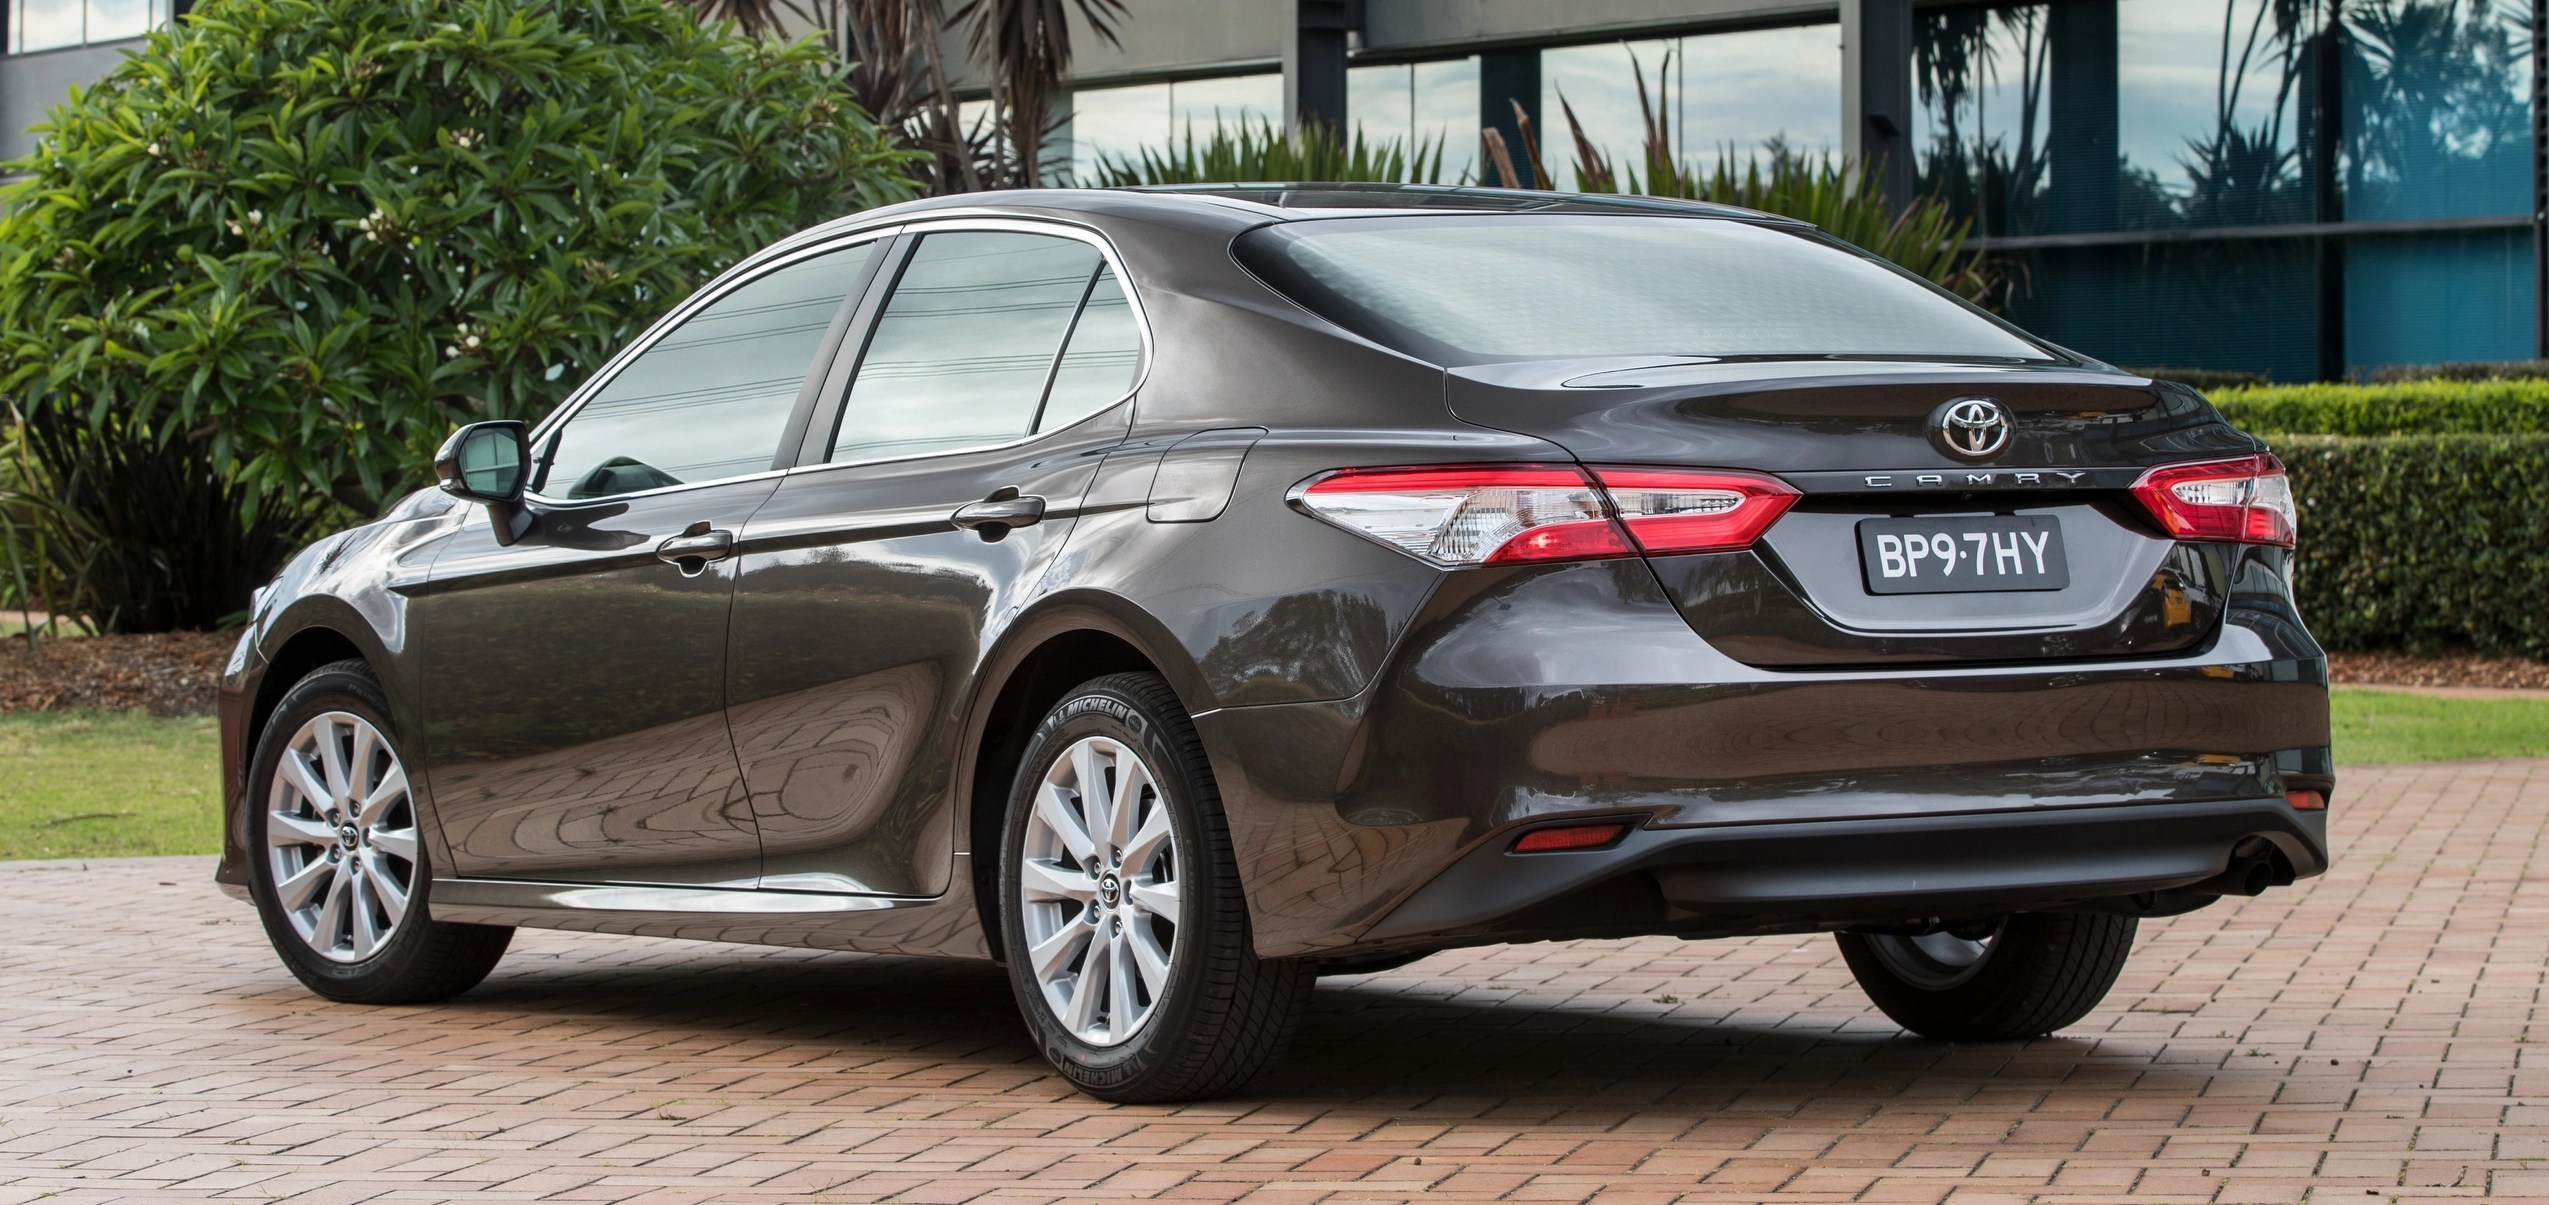 all new camry 2018 australia pelek grand veloz toyota debuts in from rm86k paul tan image 741163